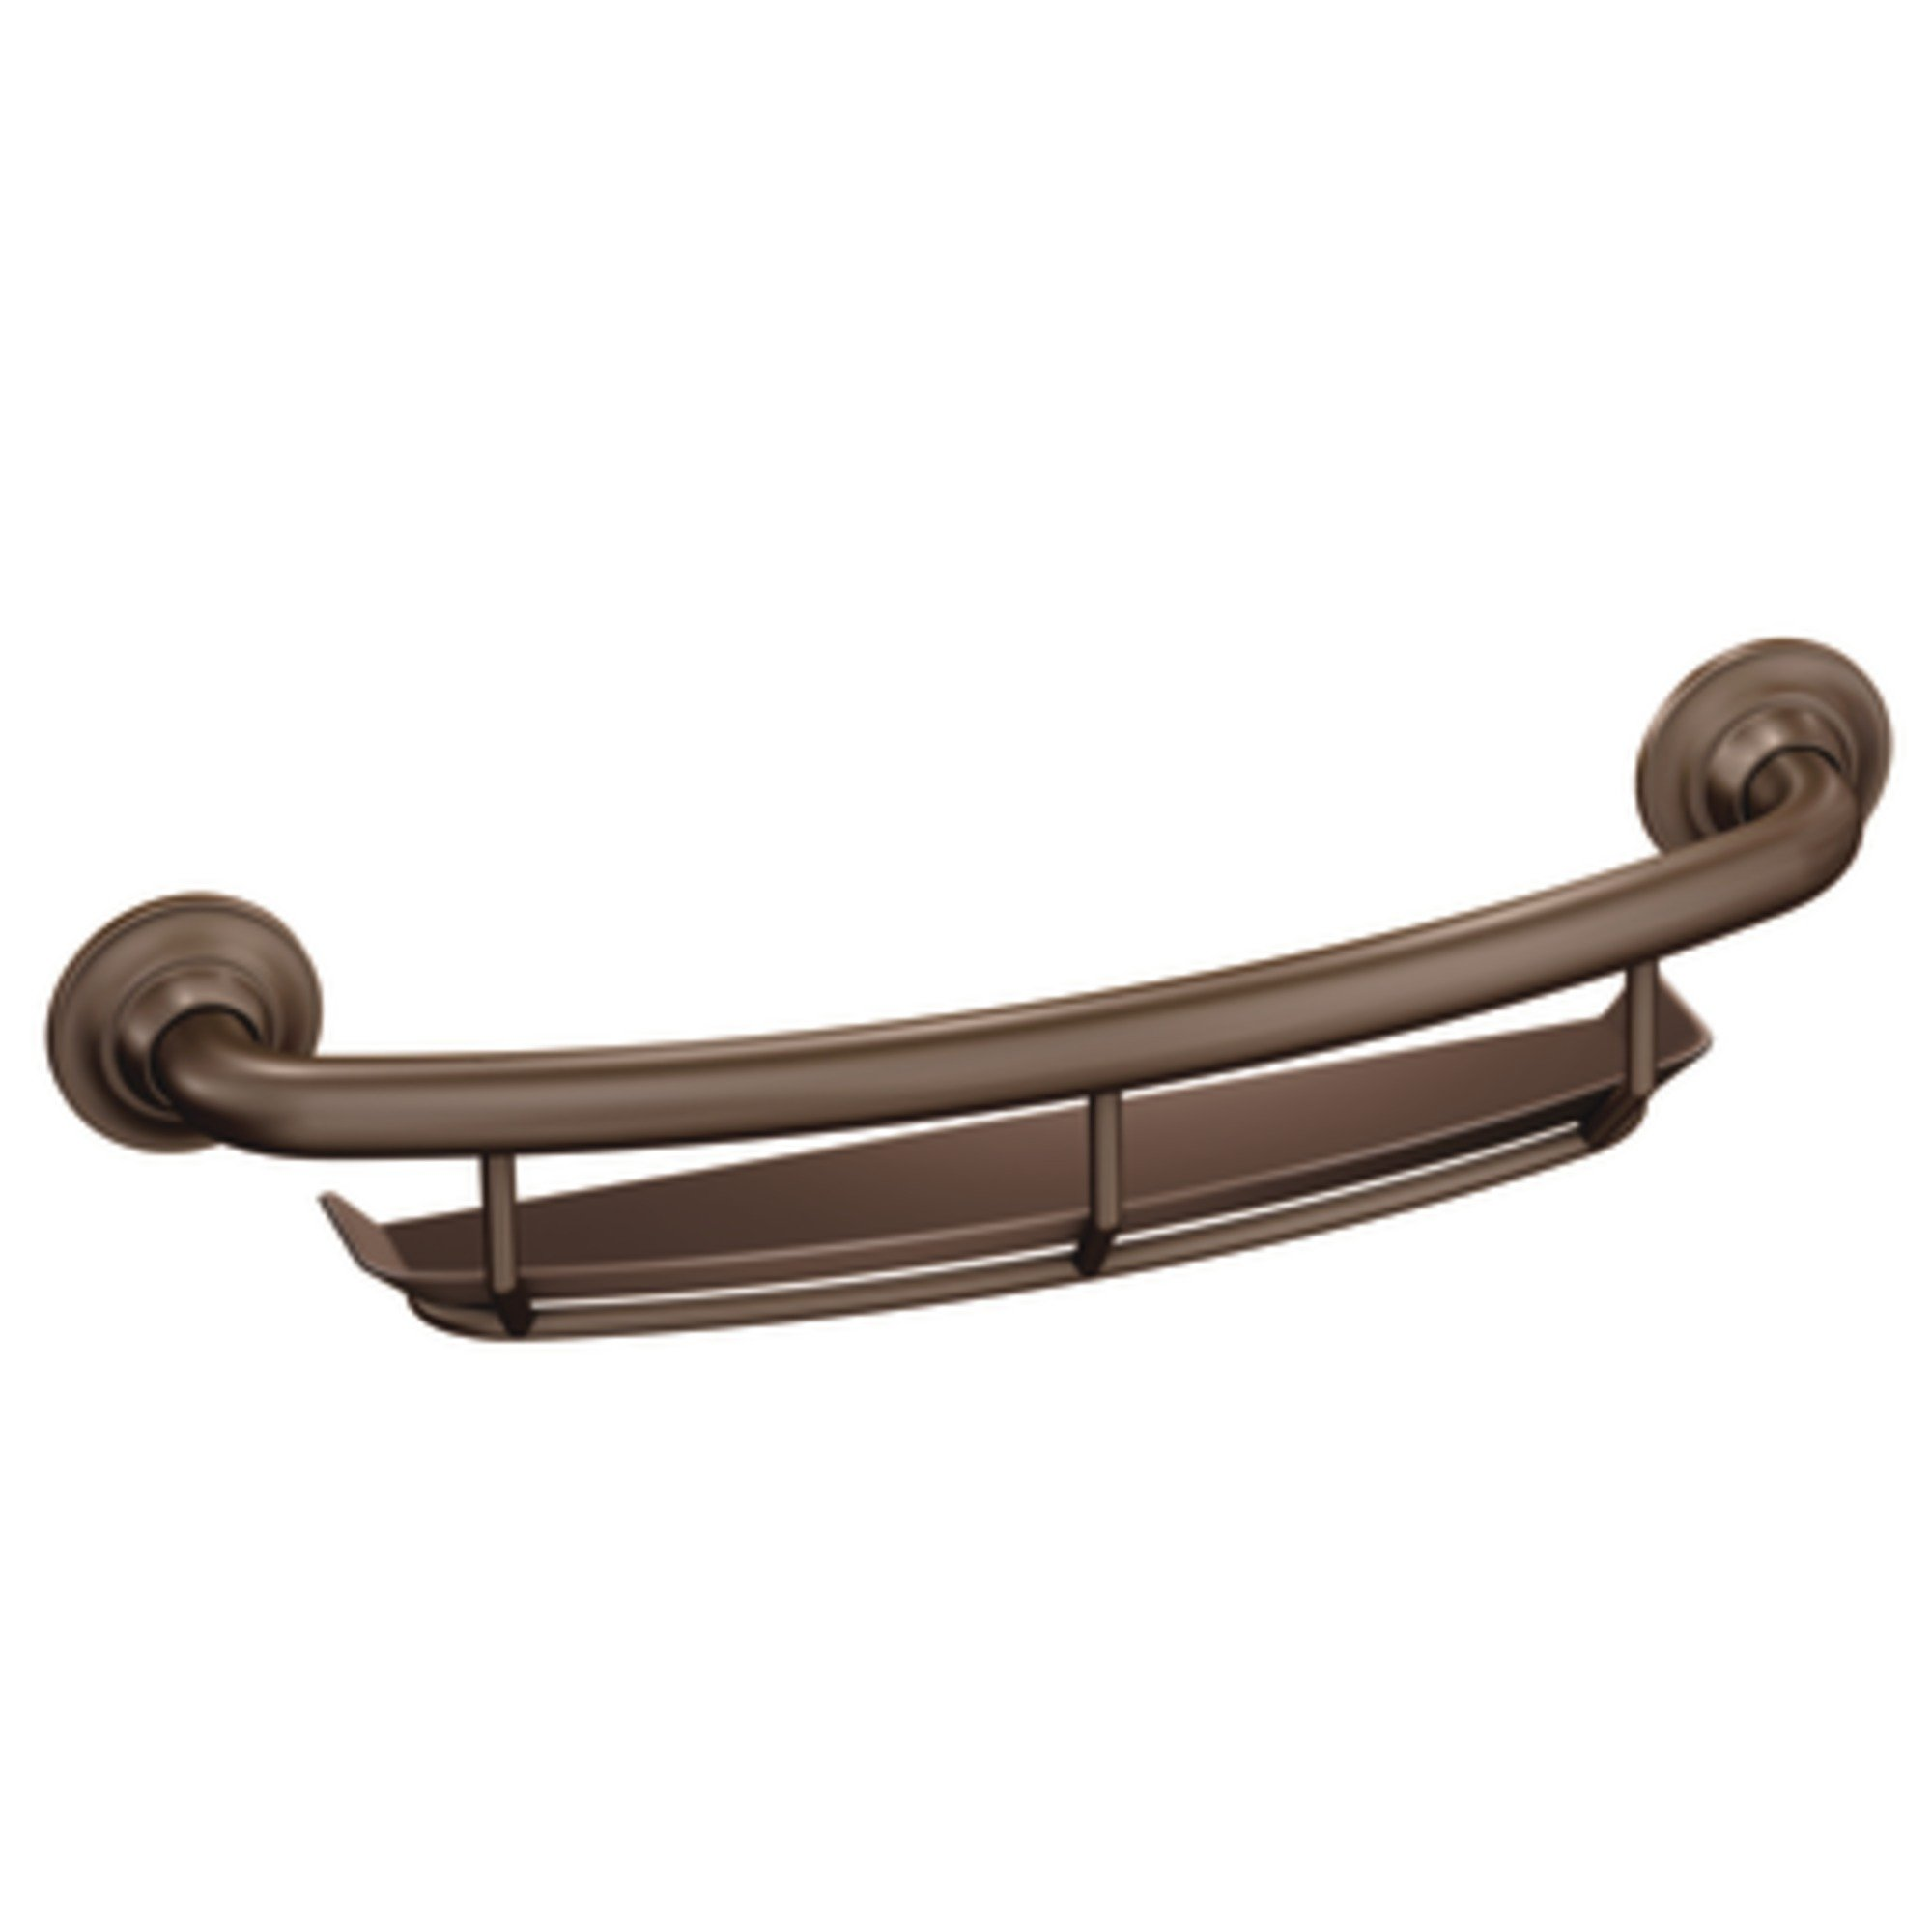 LR2356DOWB Moen LR2356DOWB Home Care 16-Inch Grab Bar with Shelf, Old World Bronze by Moen